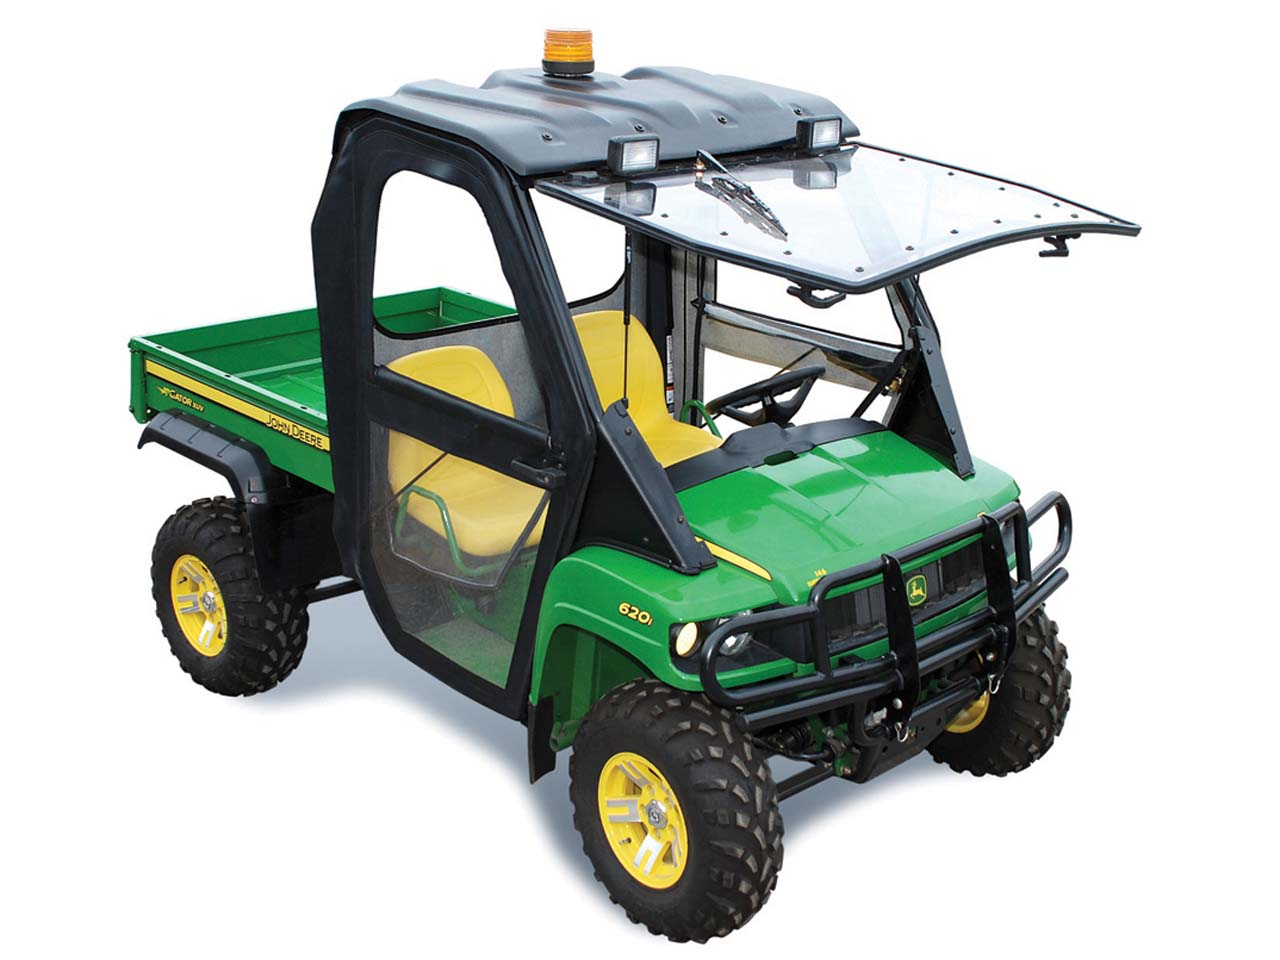 Curtis Introduces New Soft Sided Cab For John Deere Gator Xuv Hpx